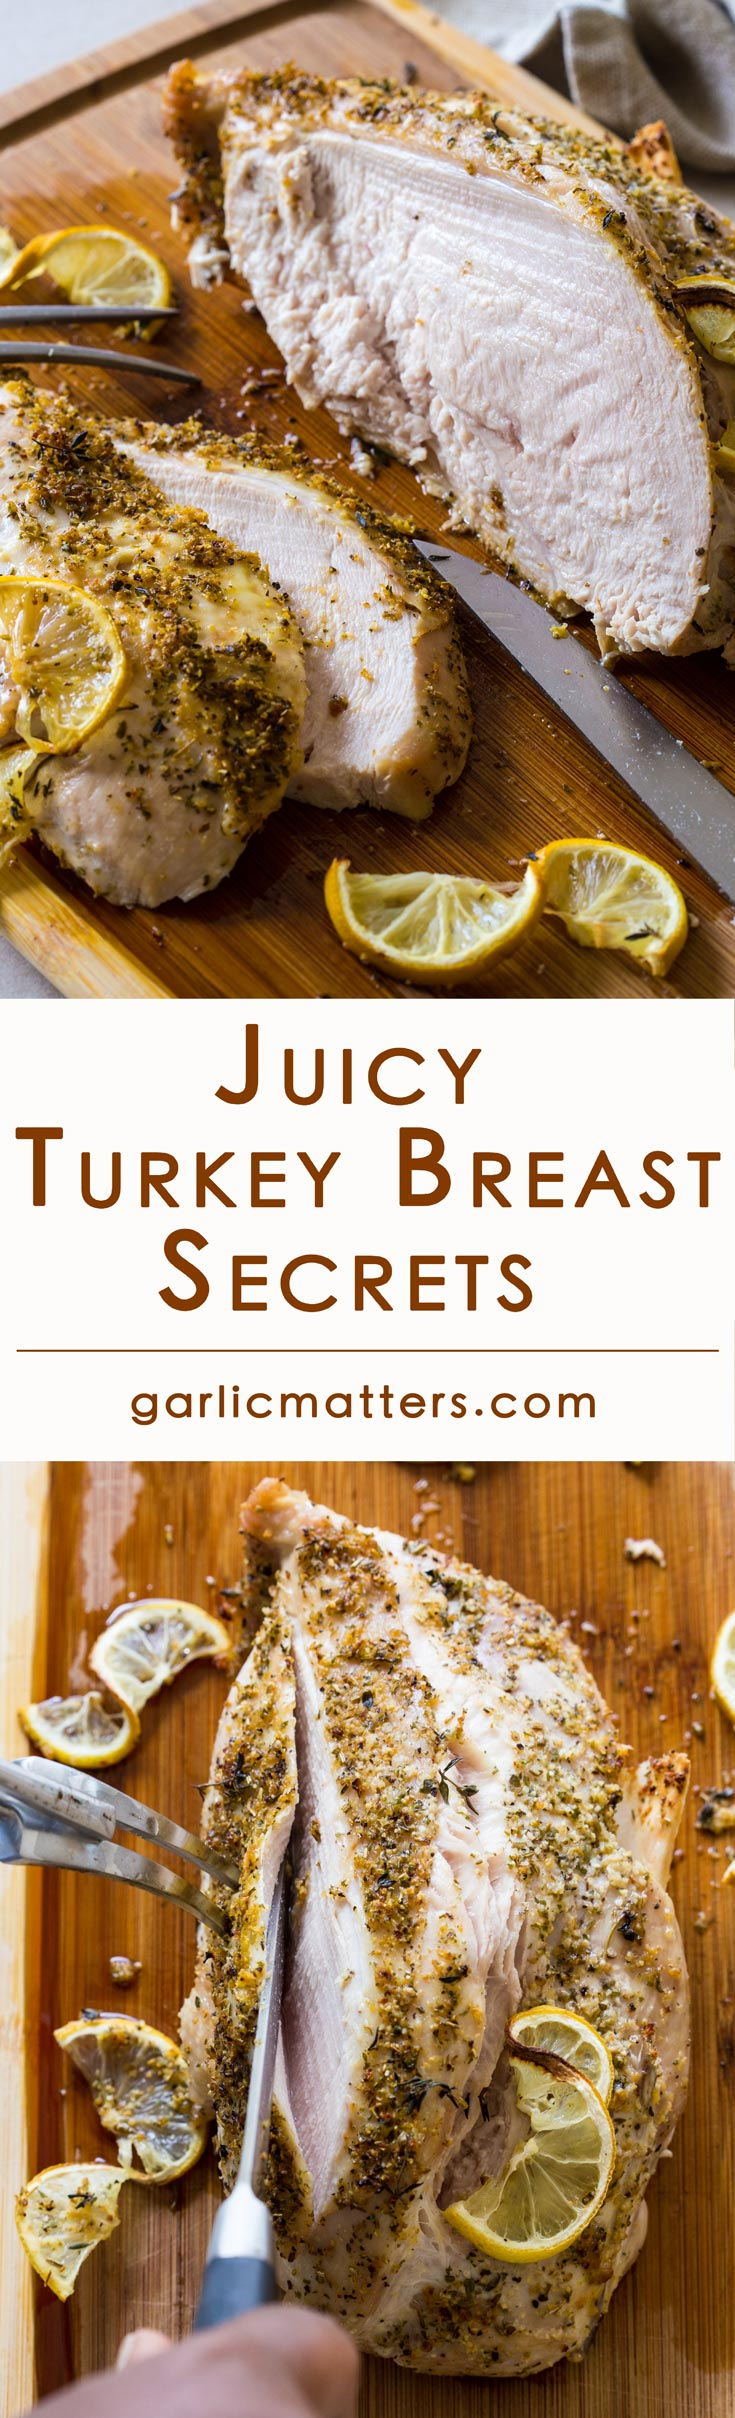 Come on in to discover my Juicy Turkey Breast secrets! This is an easy, straight forward 50 min in total recipe for an oven roasted, bone in (2 ½ lb) perfect turkey breast. You'll want to bake it time and time again, even outside the festive season to have for dinner or use in sandwiches or salads.